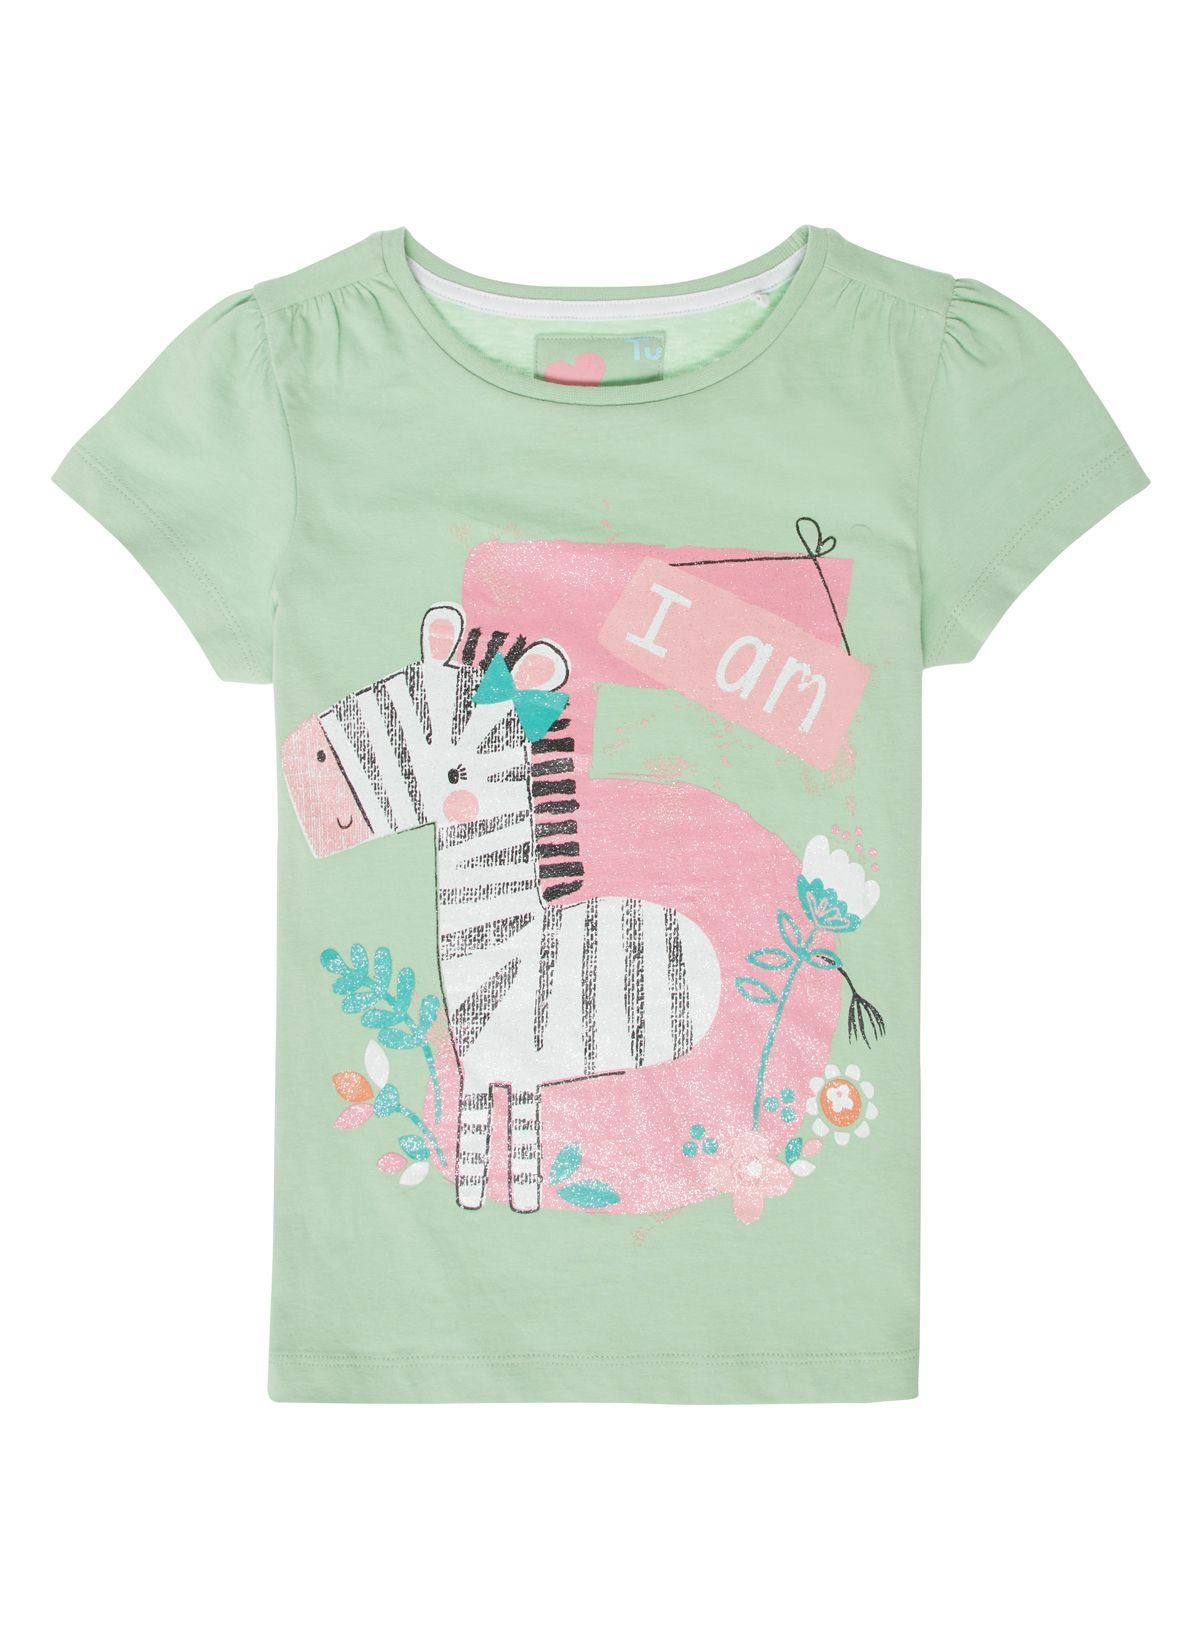 3b0b3cfe209 Brighten up her little collection with this playful 'I am 5' print T ...